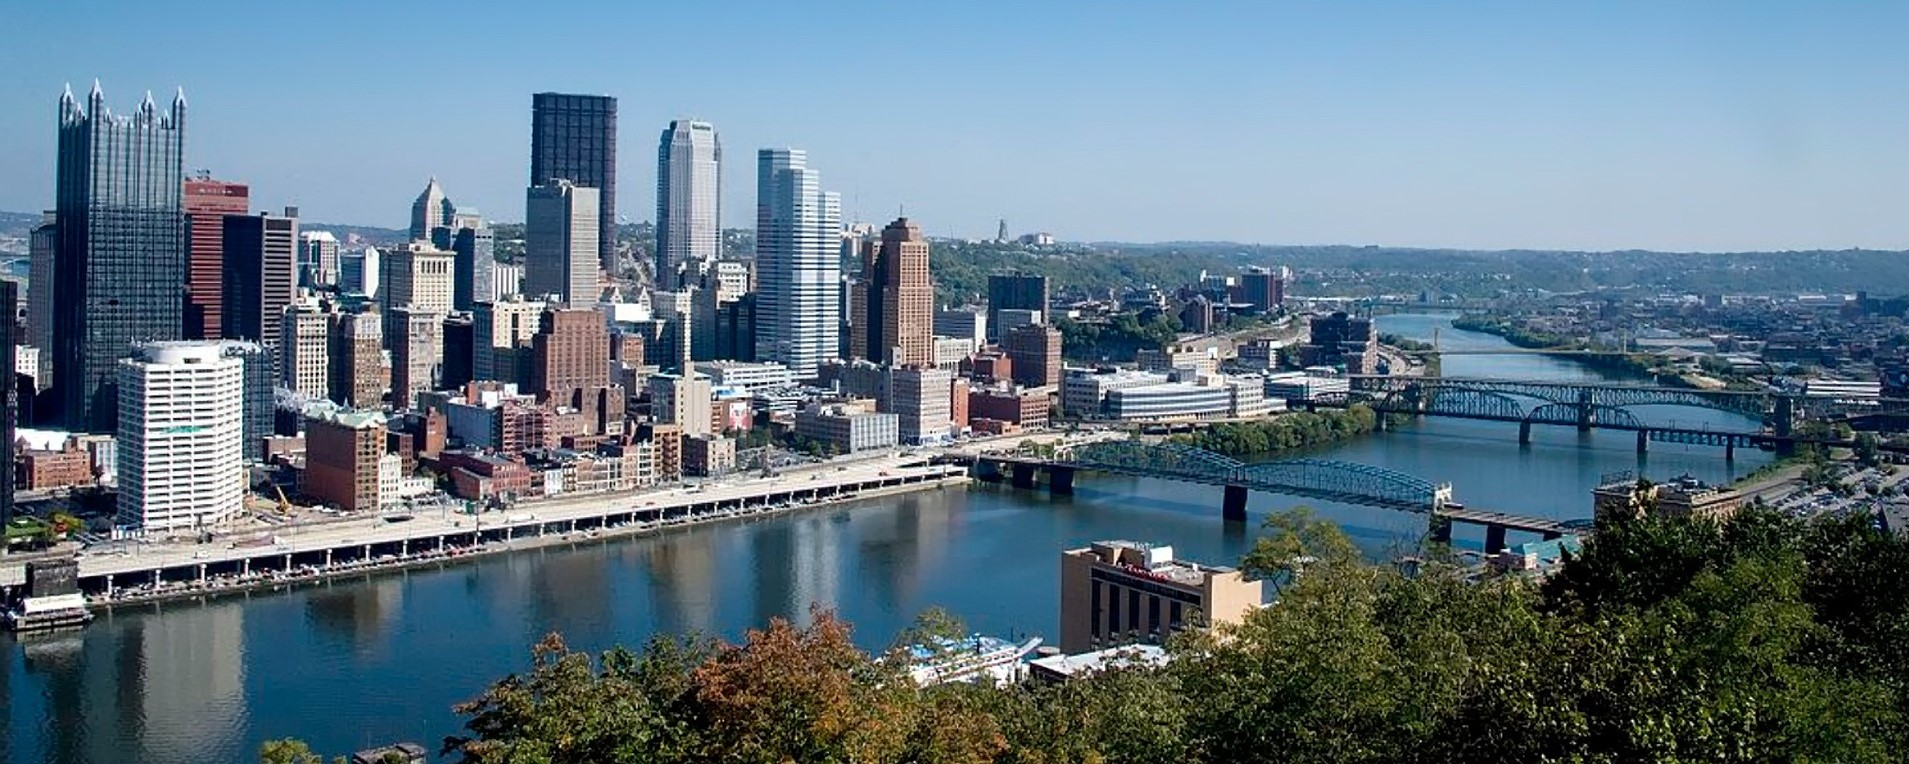 City Skyline in Pittsburgh, Pennsylvania | Breast Cancer Car Donations